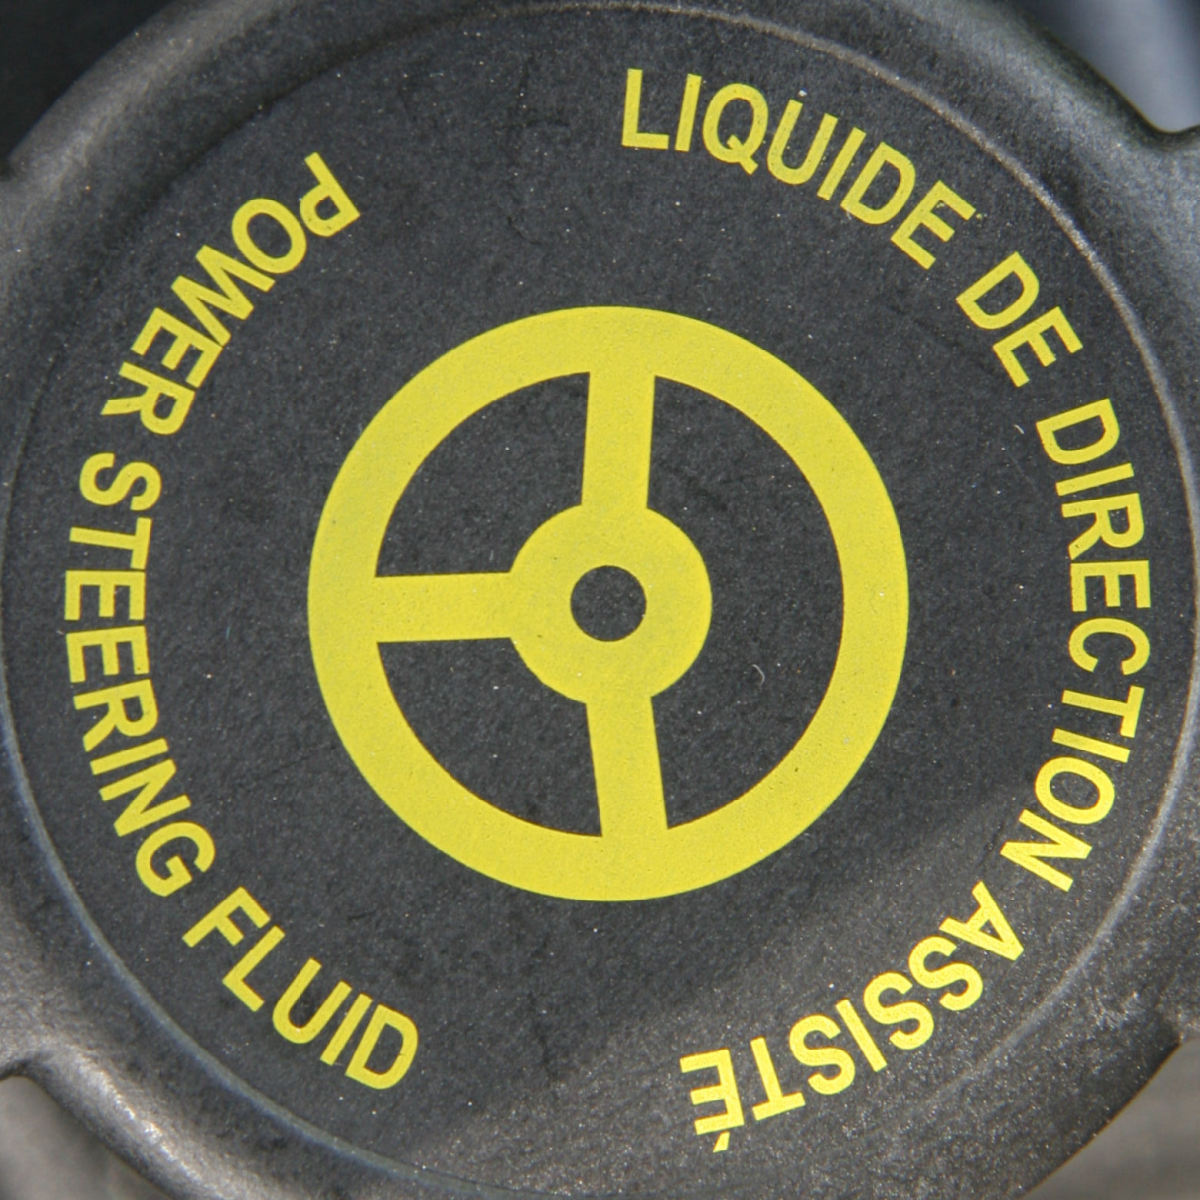 Add only the power steering fluid recommended by your car manufacturer for your specific application.